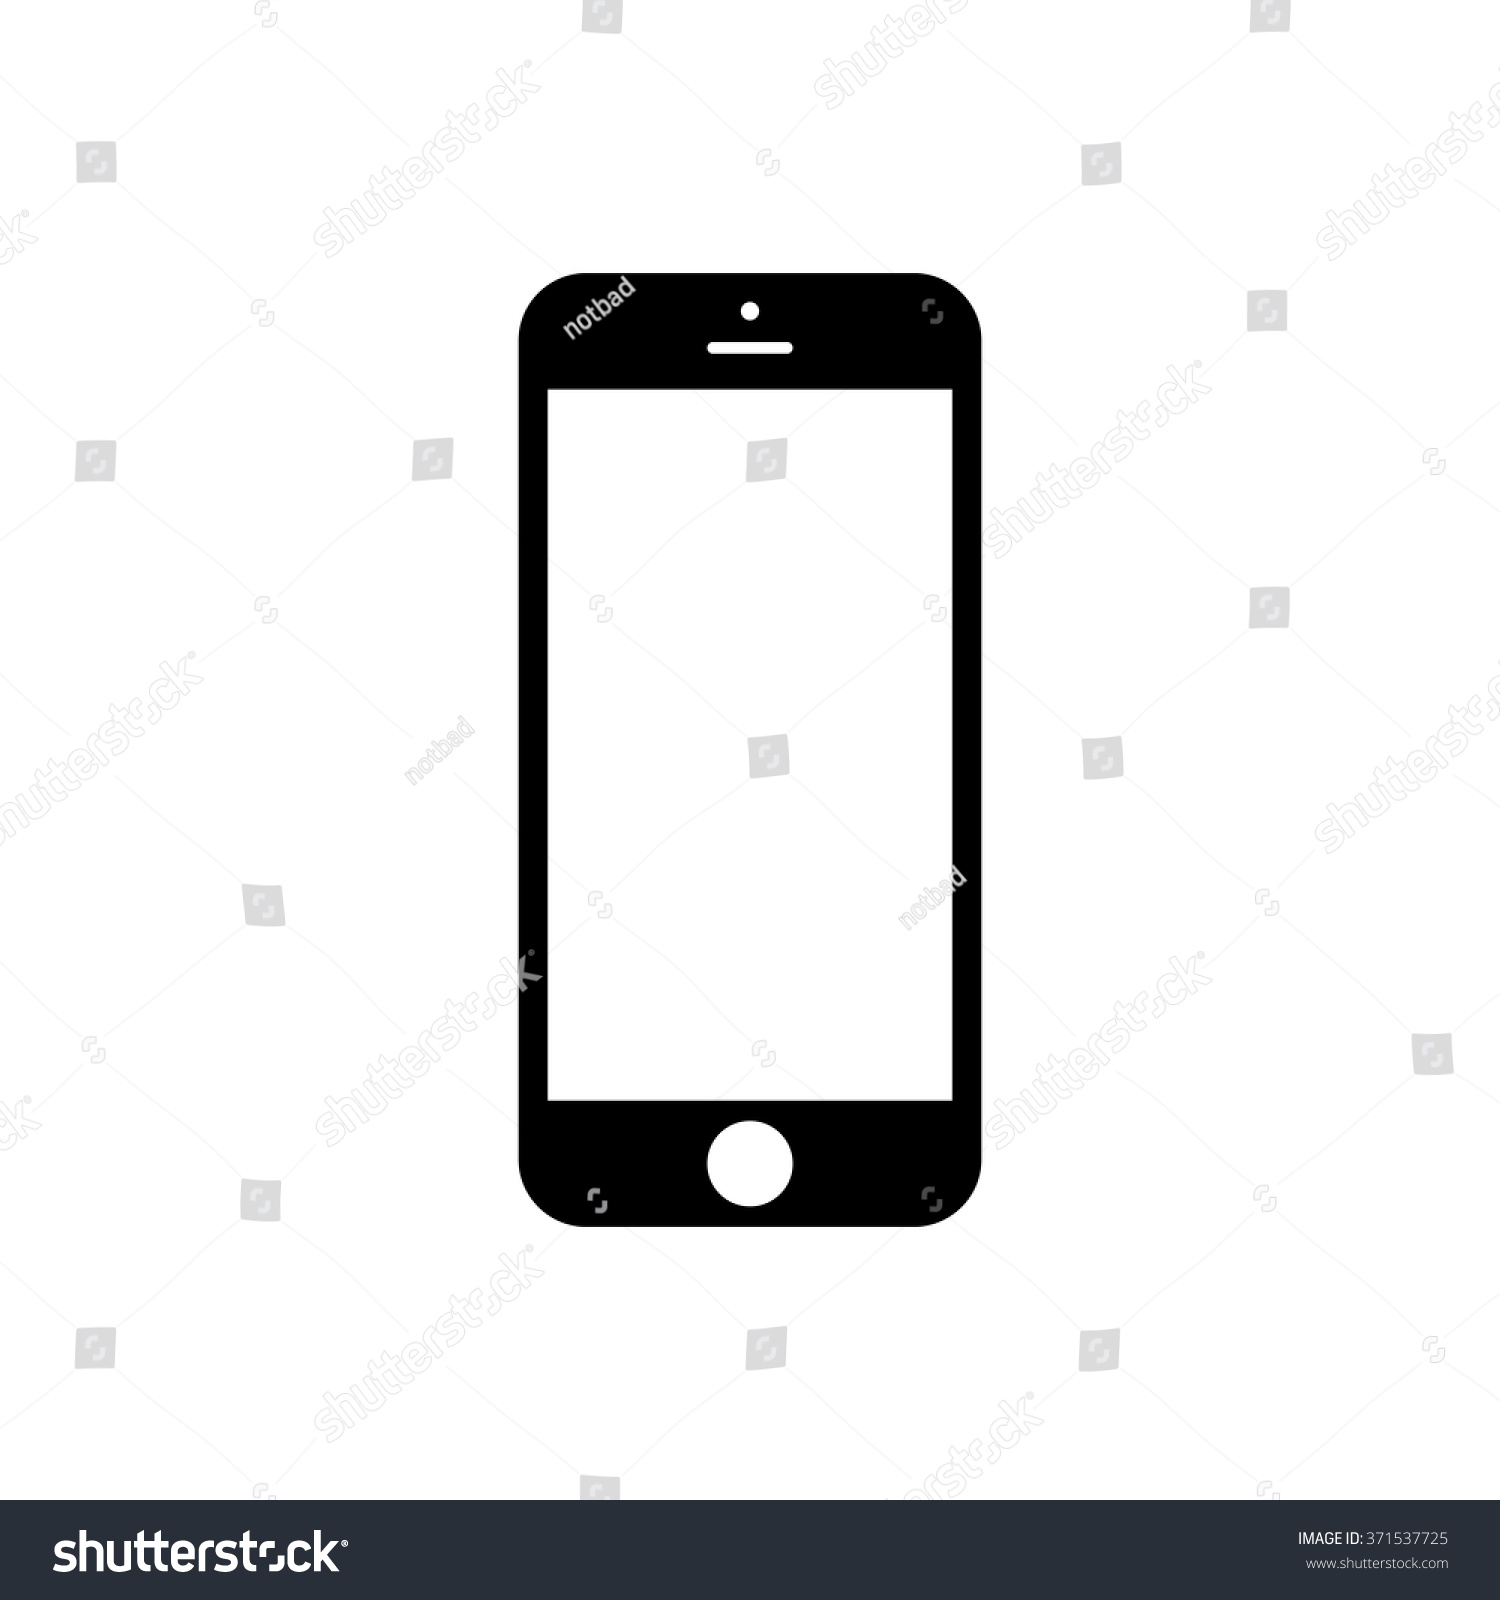 Smartphone icon iphone style cellphone pictogram stock vector smartphone icon in iphone style cellphone pictogram in trendy flat style isolated on white background biocorpaavc Image collections